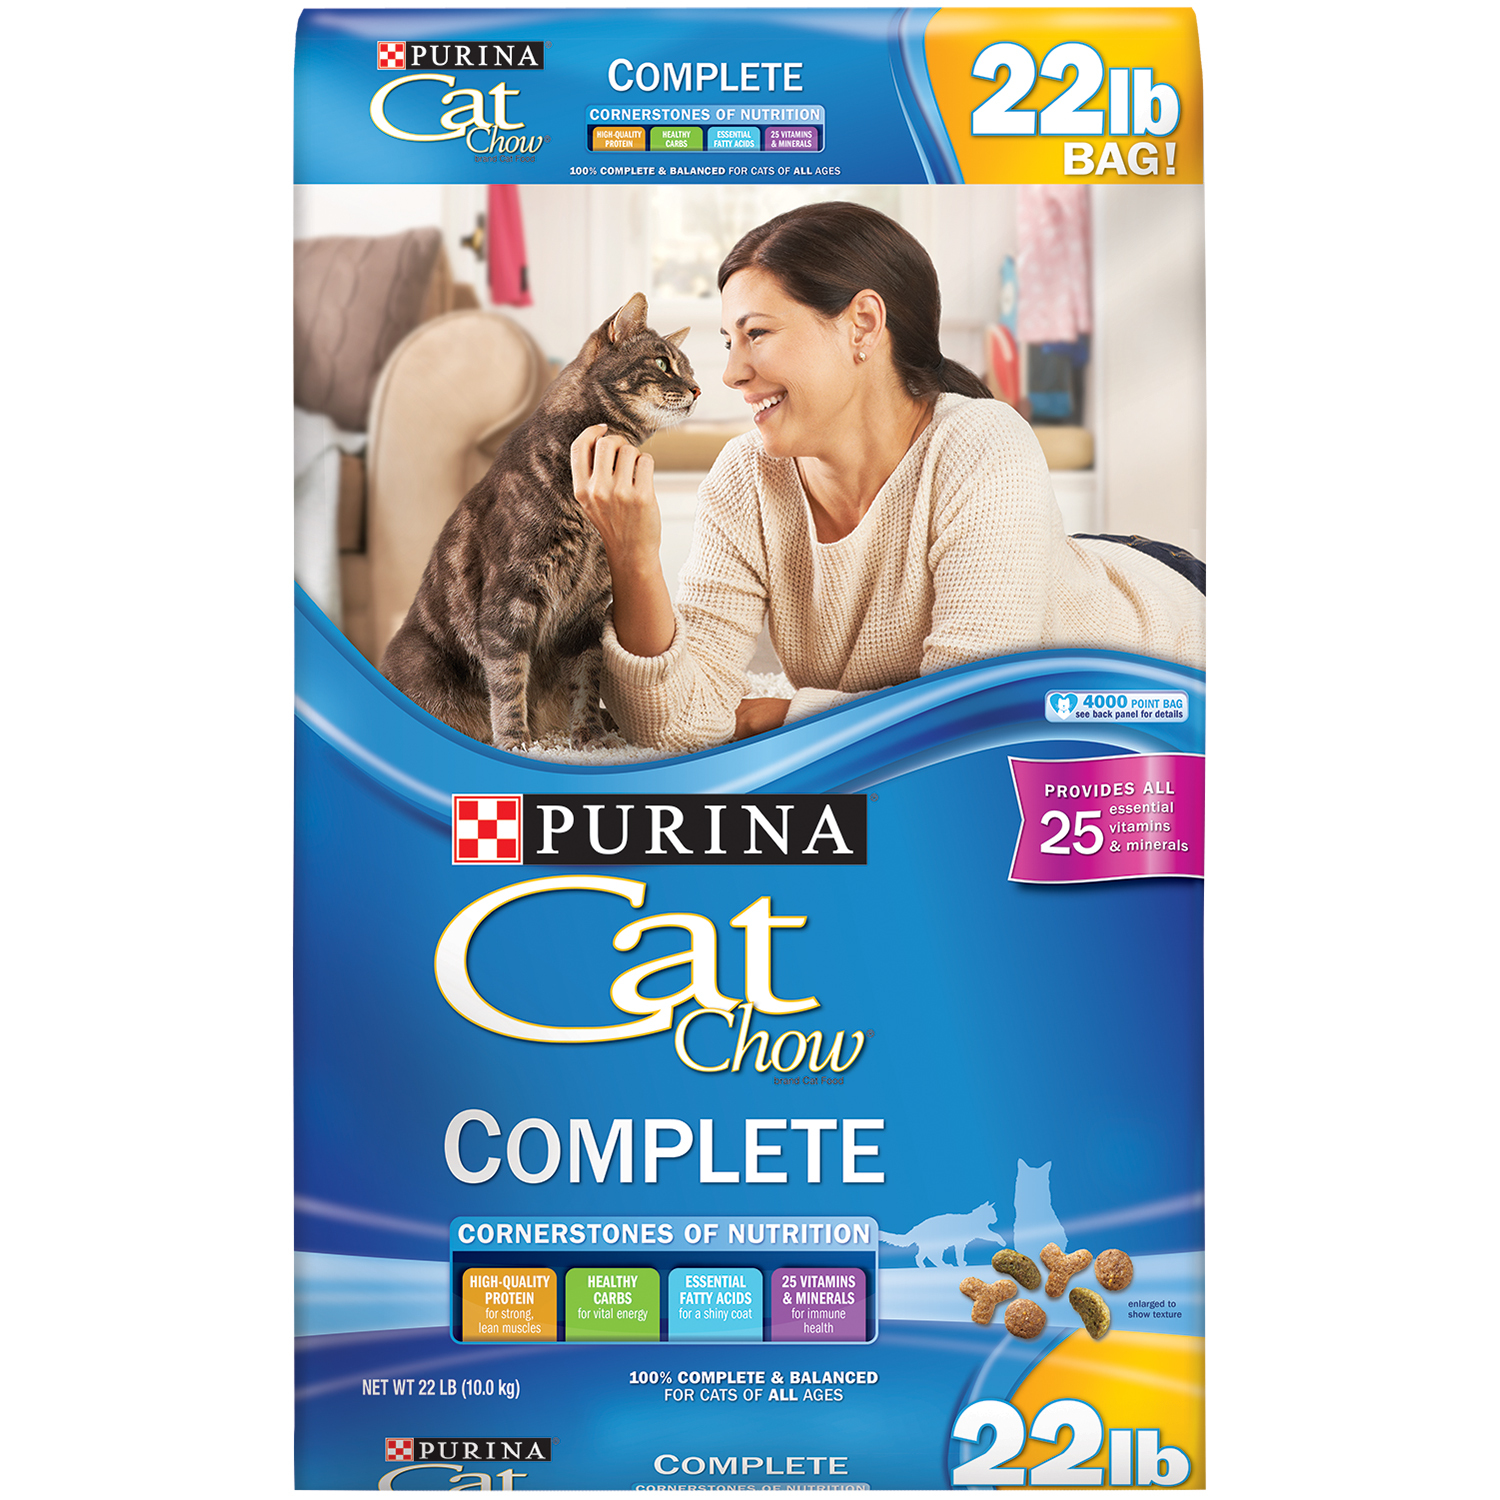 Purina Cat Chow Complete Cat Food 22 lb. Bag